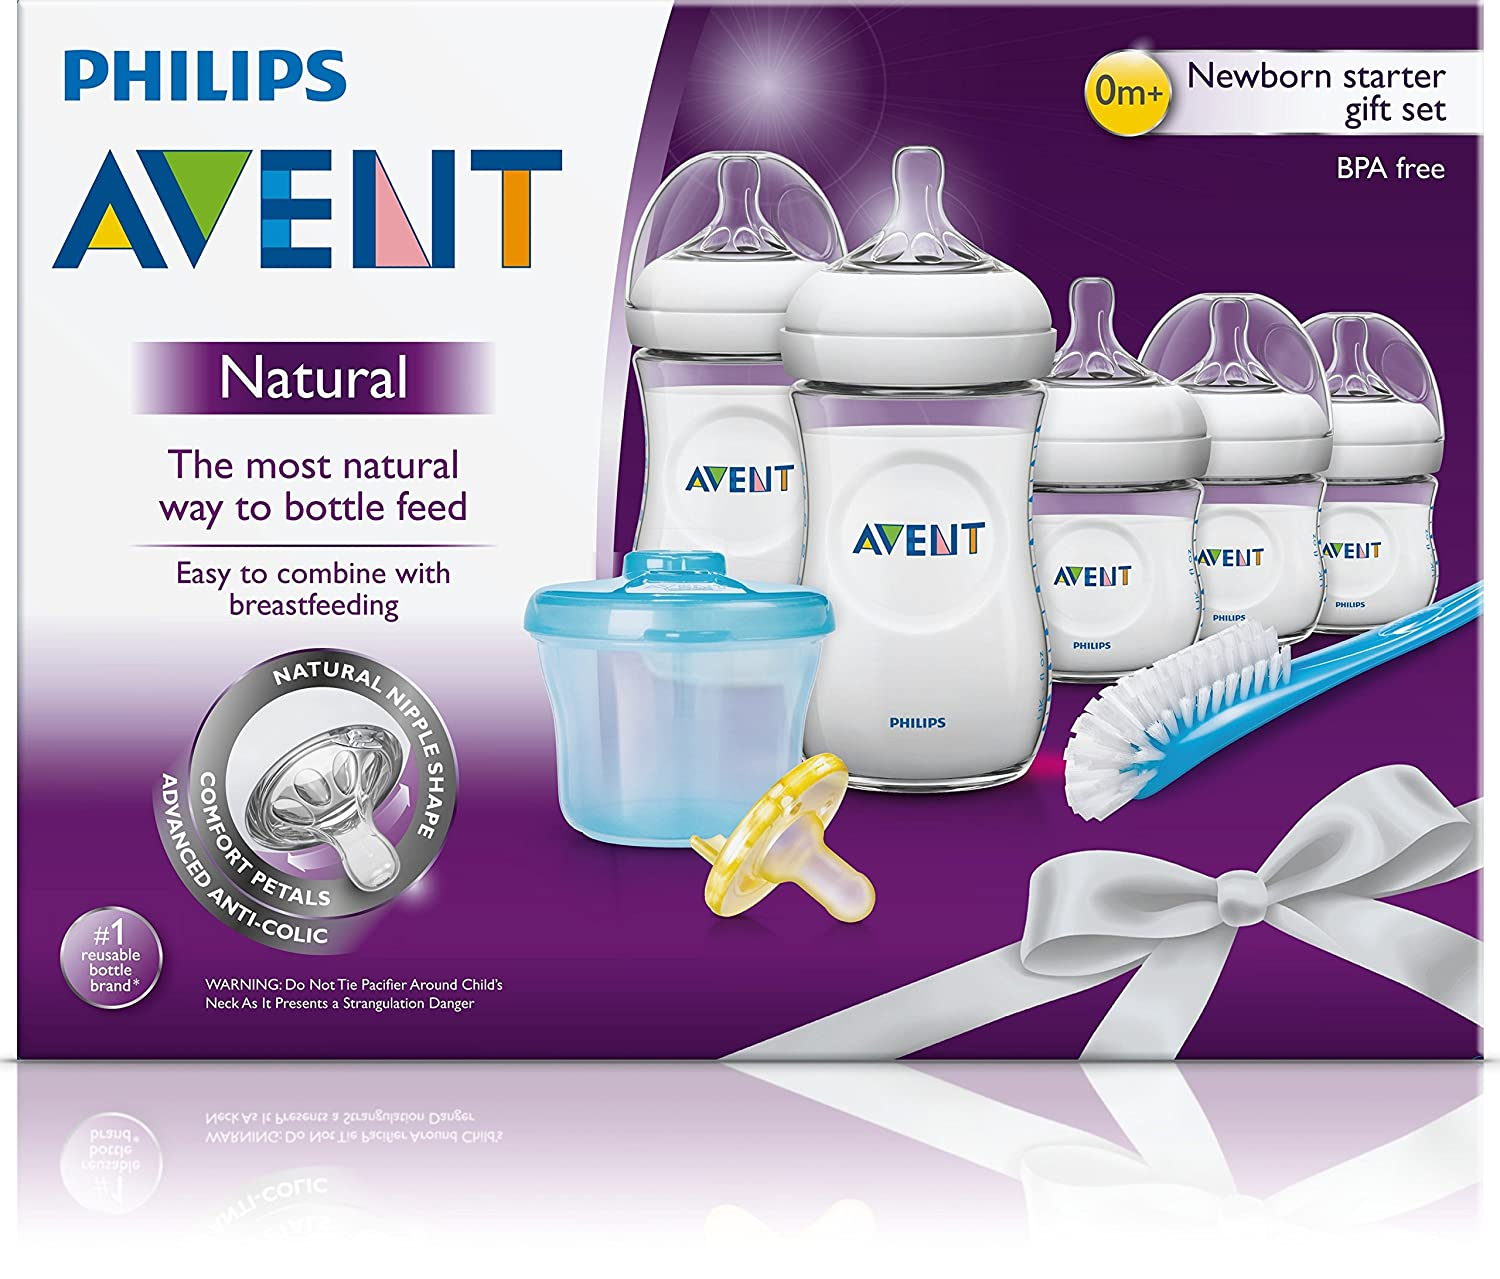 Amazon.com : Philips Avent Natural Newborn Baby Bottle Starter Set ...